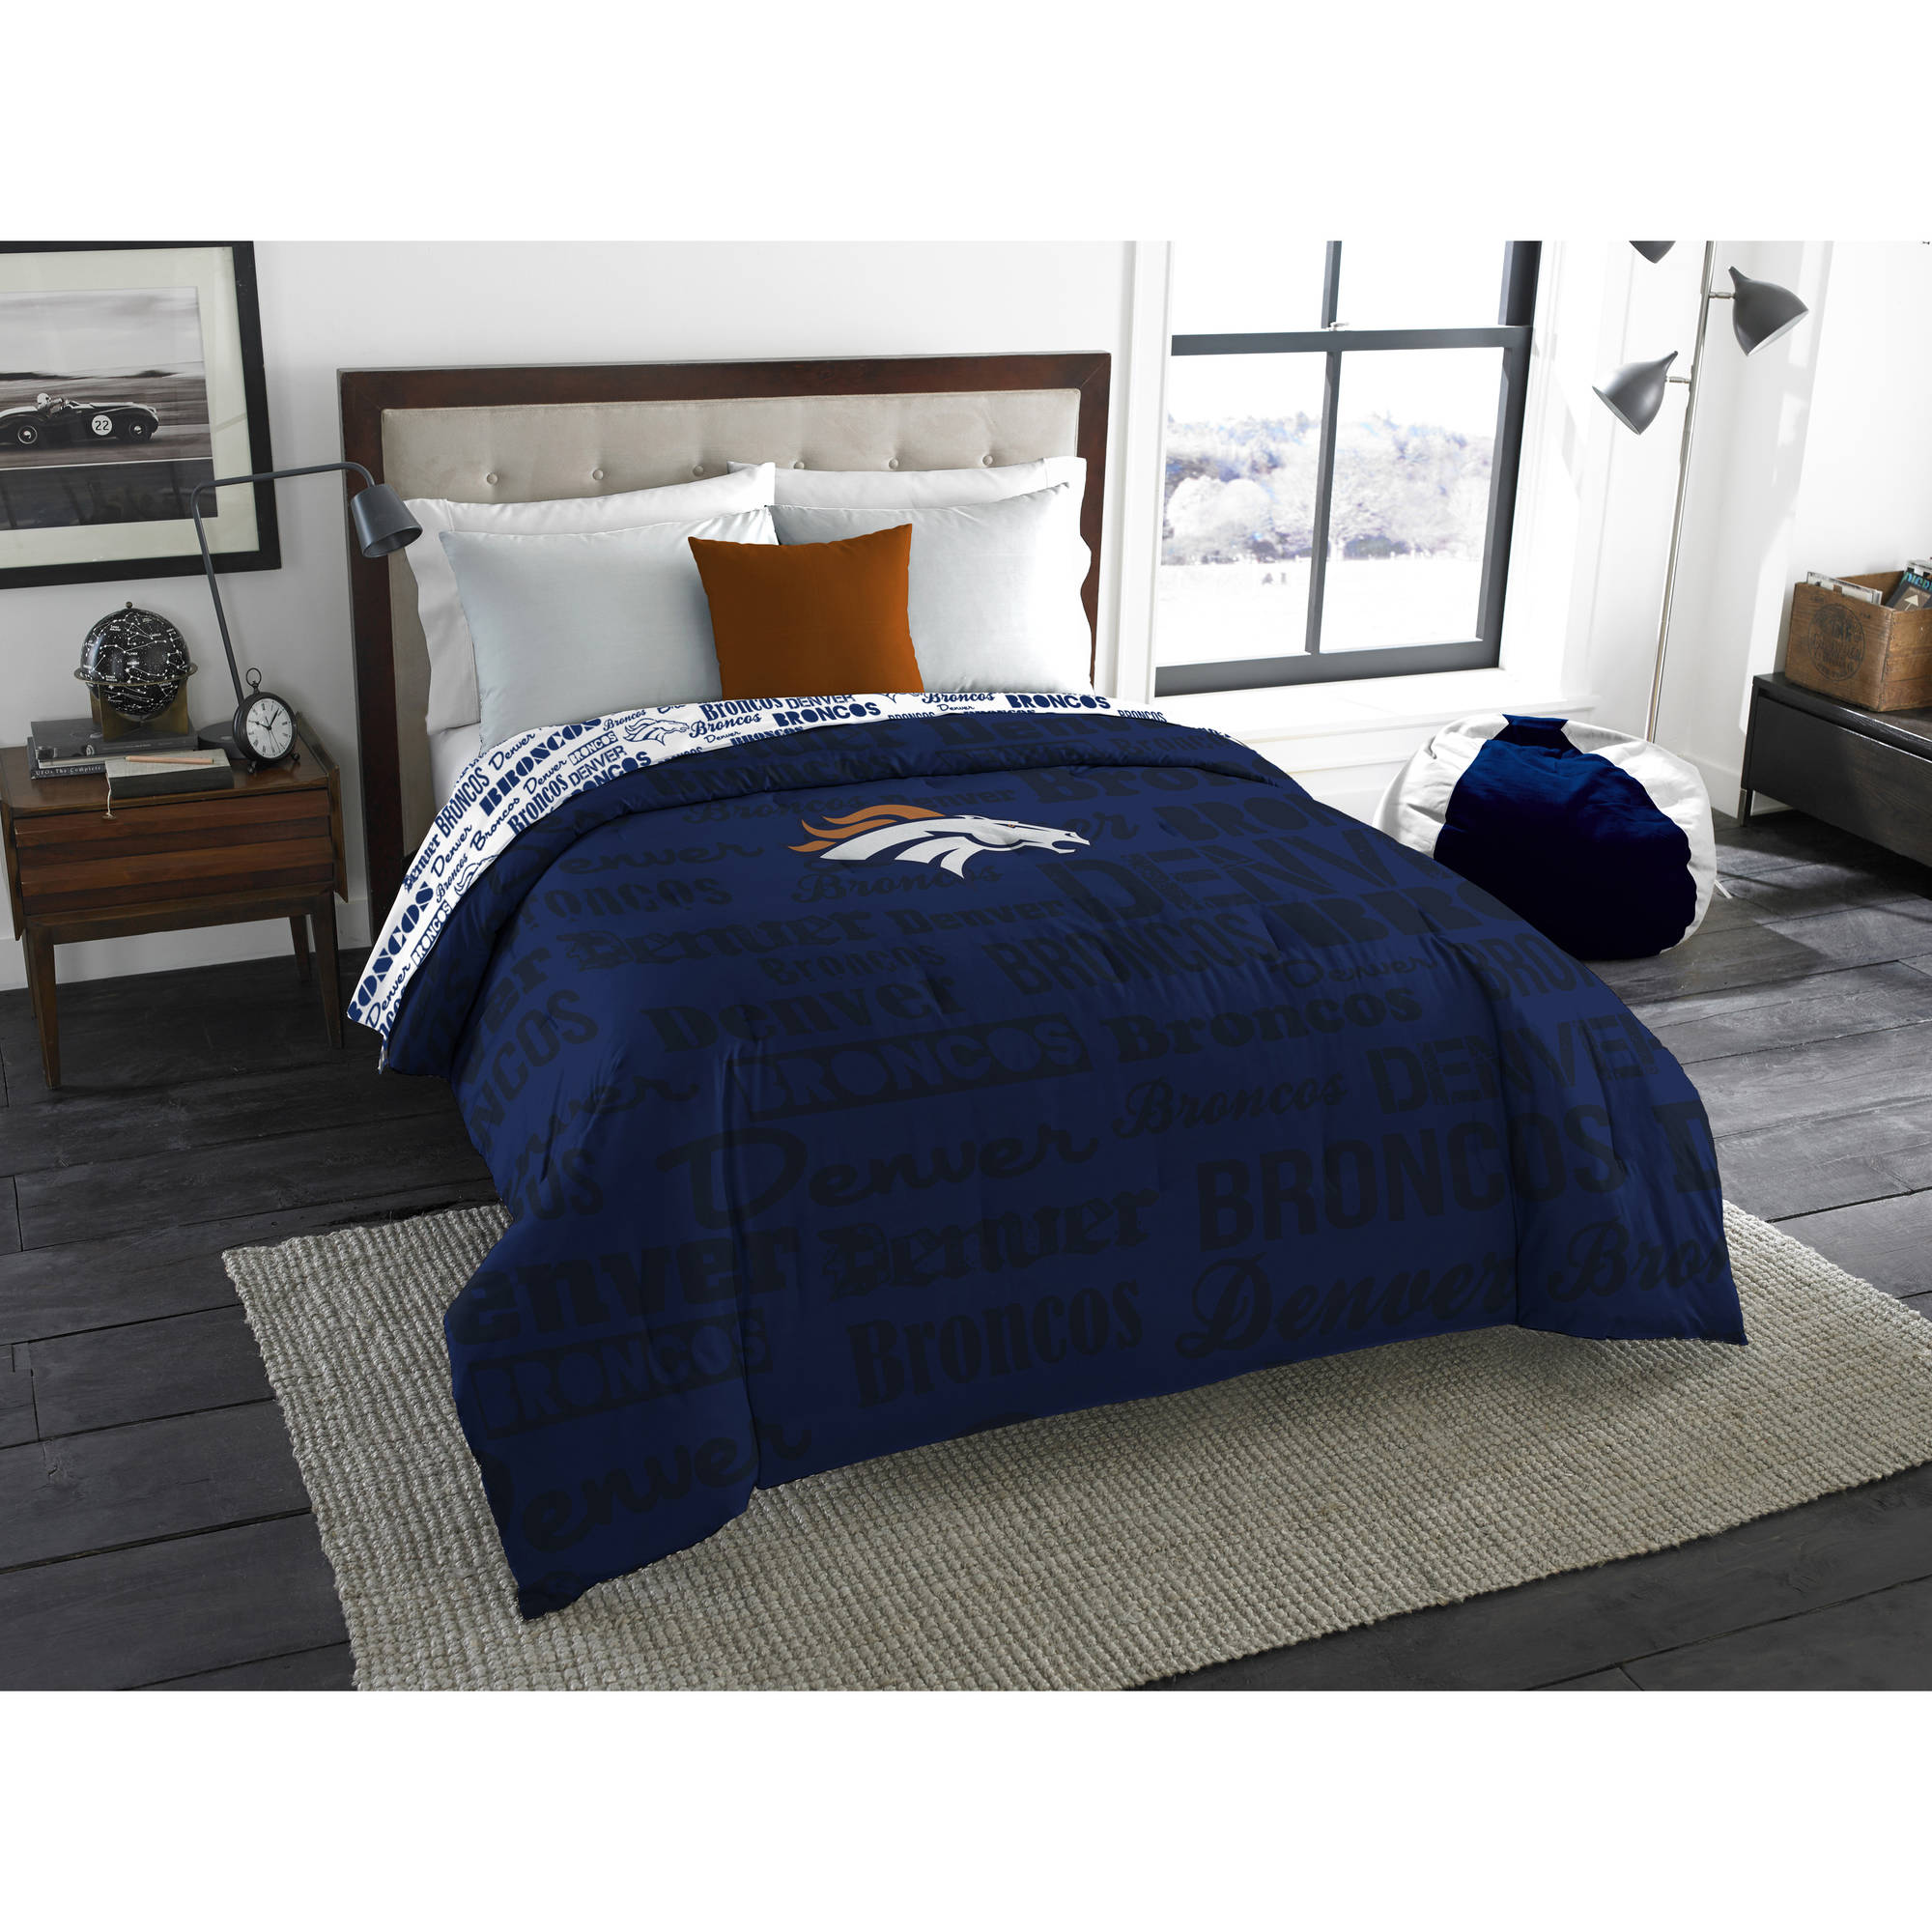 "NFL Denver Broncos ""Anthem"" Twin/Full Bedding Comforter"